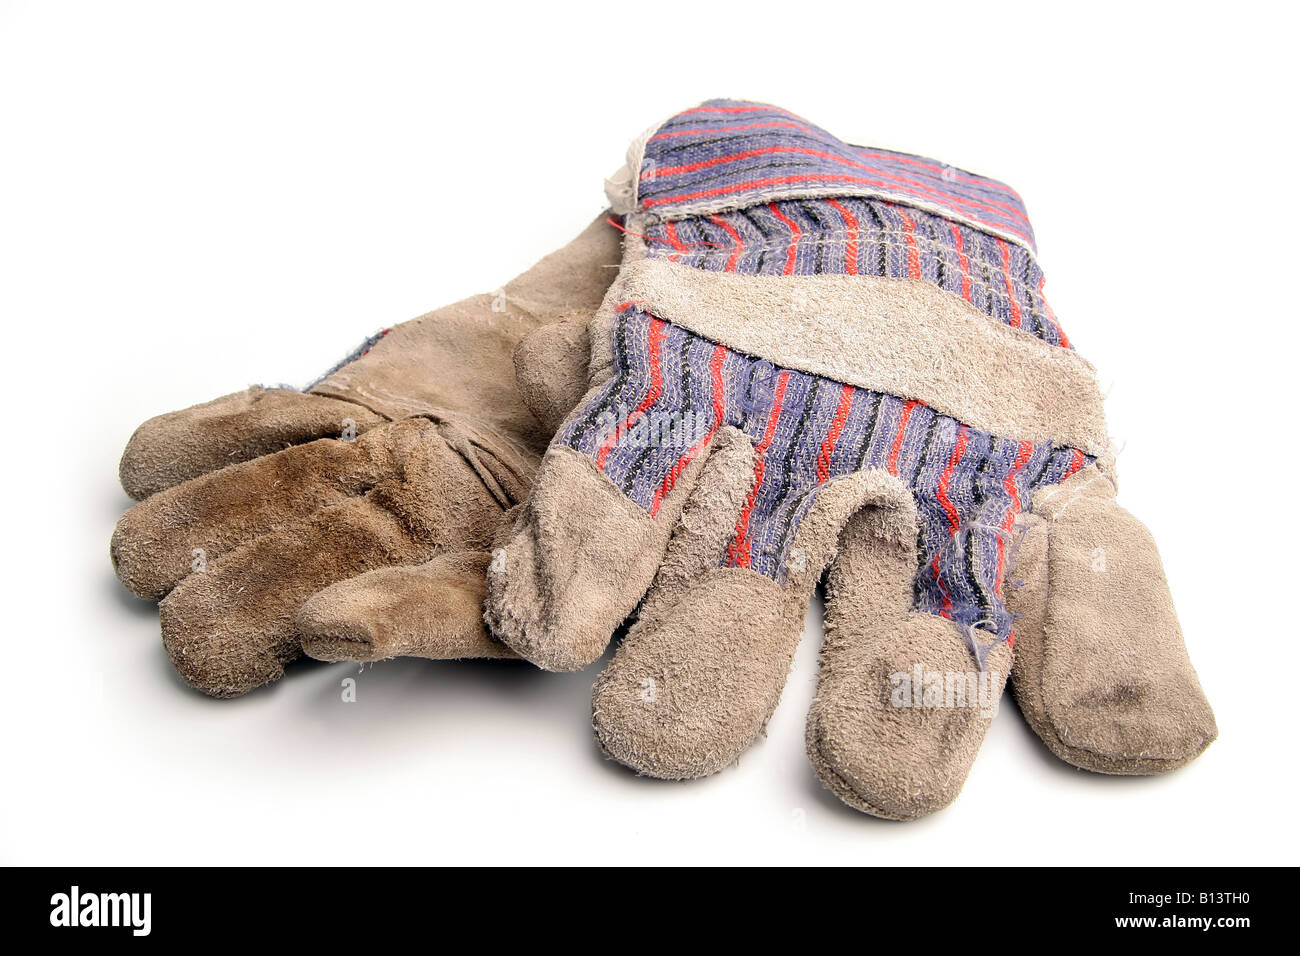 Used gardening gloves - Stock Image